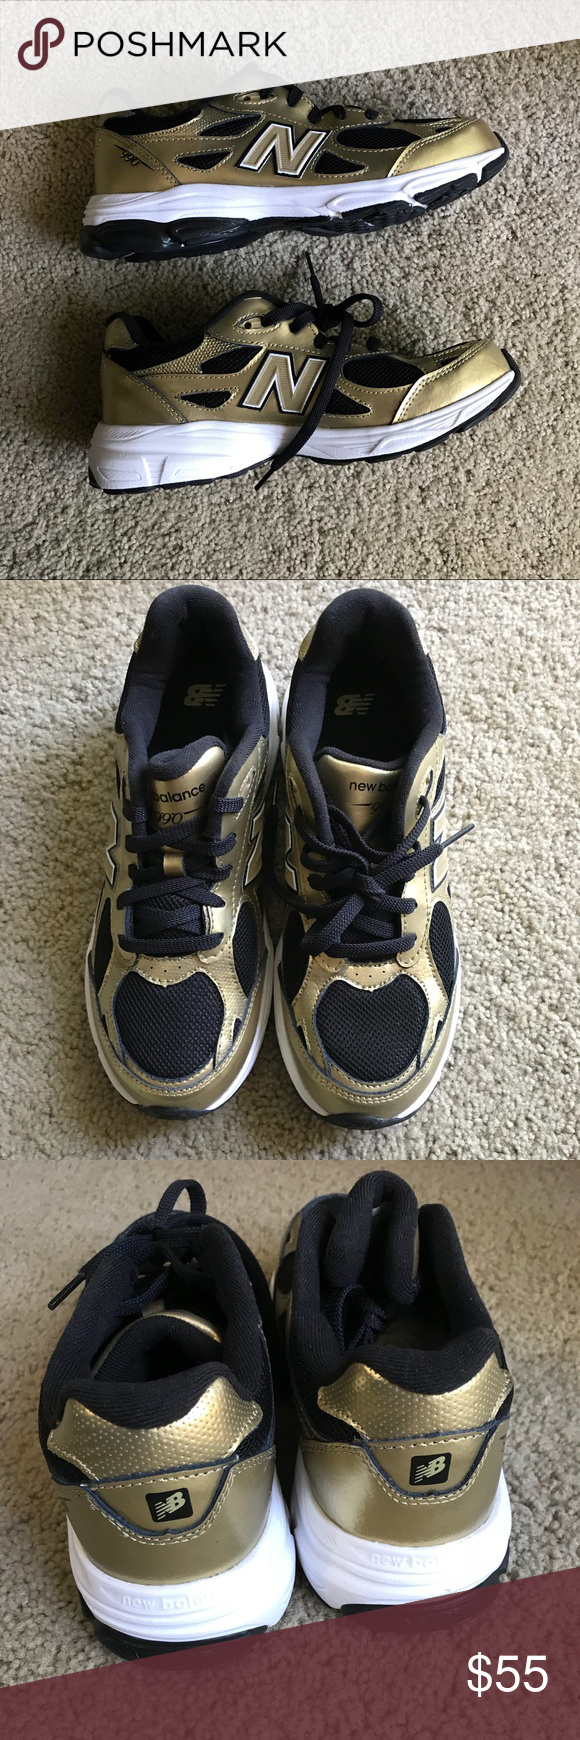 huge selection of 4d012 2419e New Balance 990 New. Never Worn. Black and Gold New Balance ...